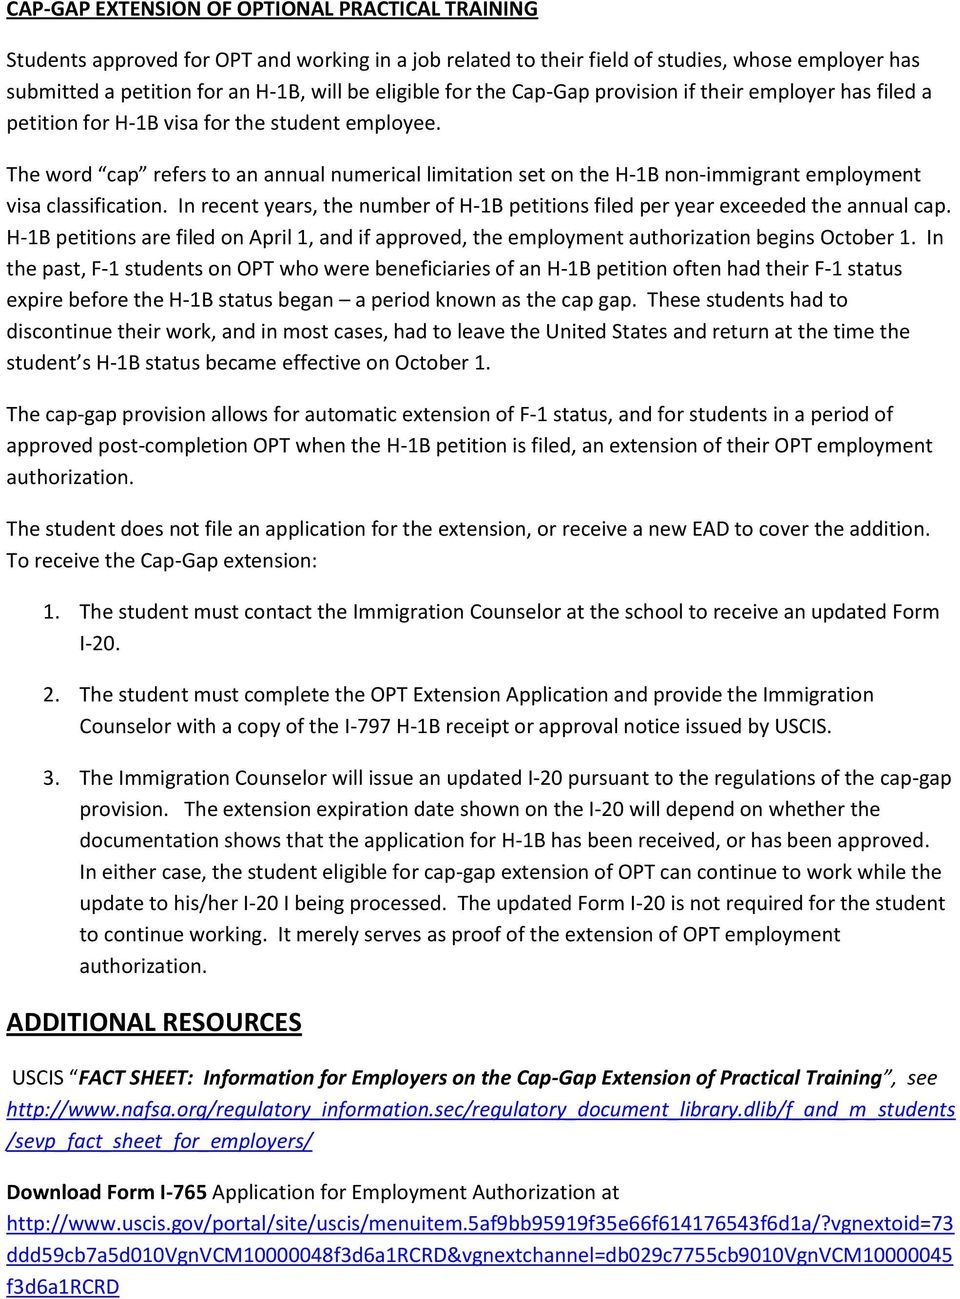 OPTIONAL PRACTICAL TRAINING APPLICATION AND INFORMATION - PDF